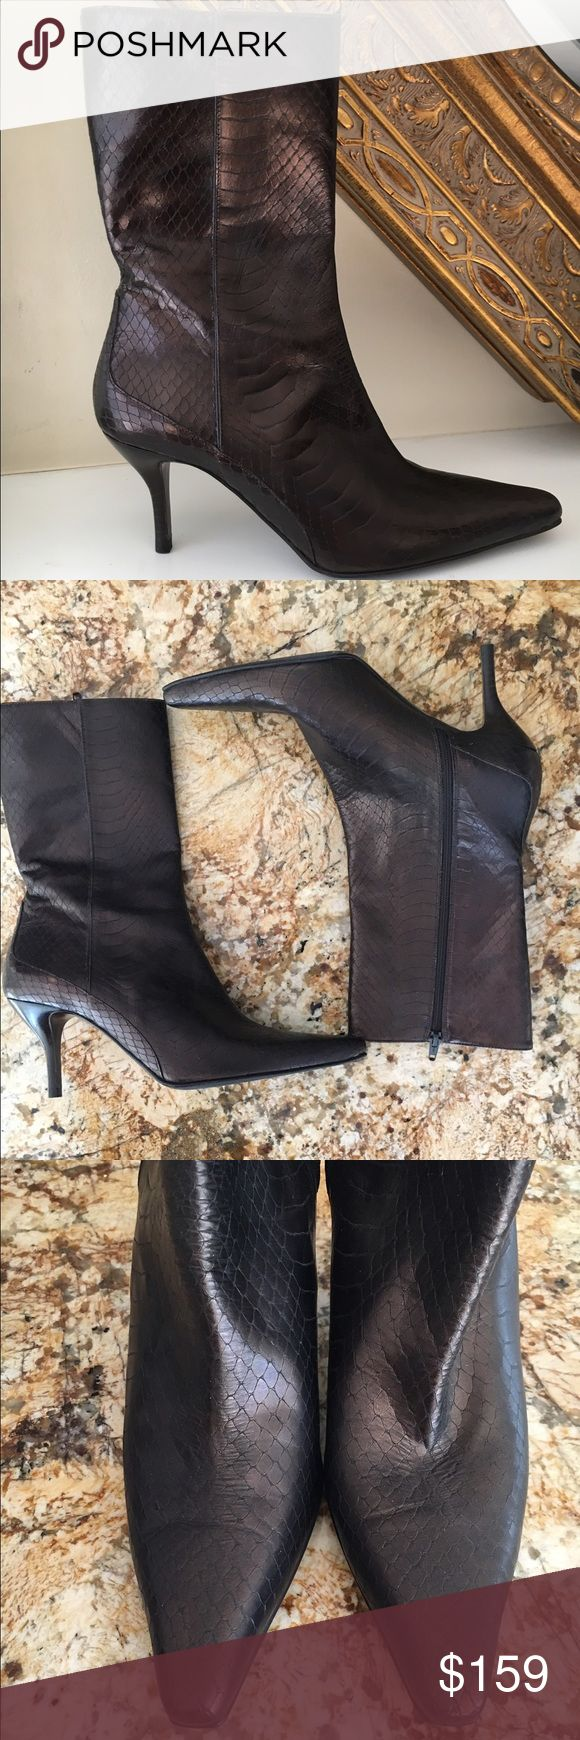 Cole haan brown boots Never worn perfect condition bronze colored snakeskin look size 8 1/2 Cole Haan Shoes Heeled Boots